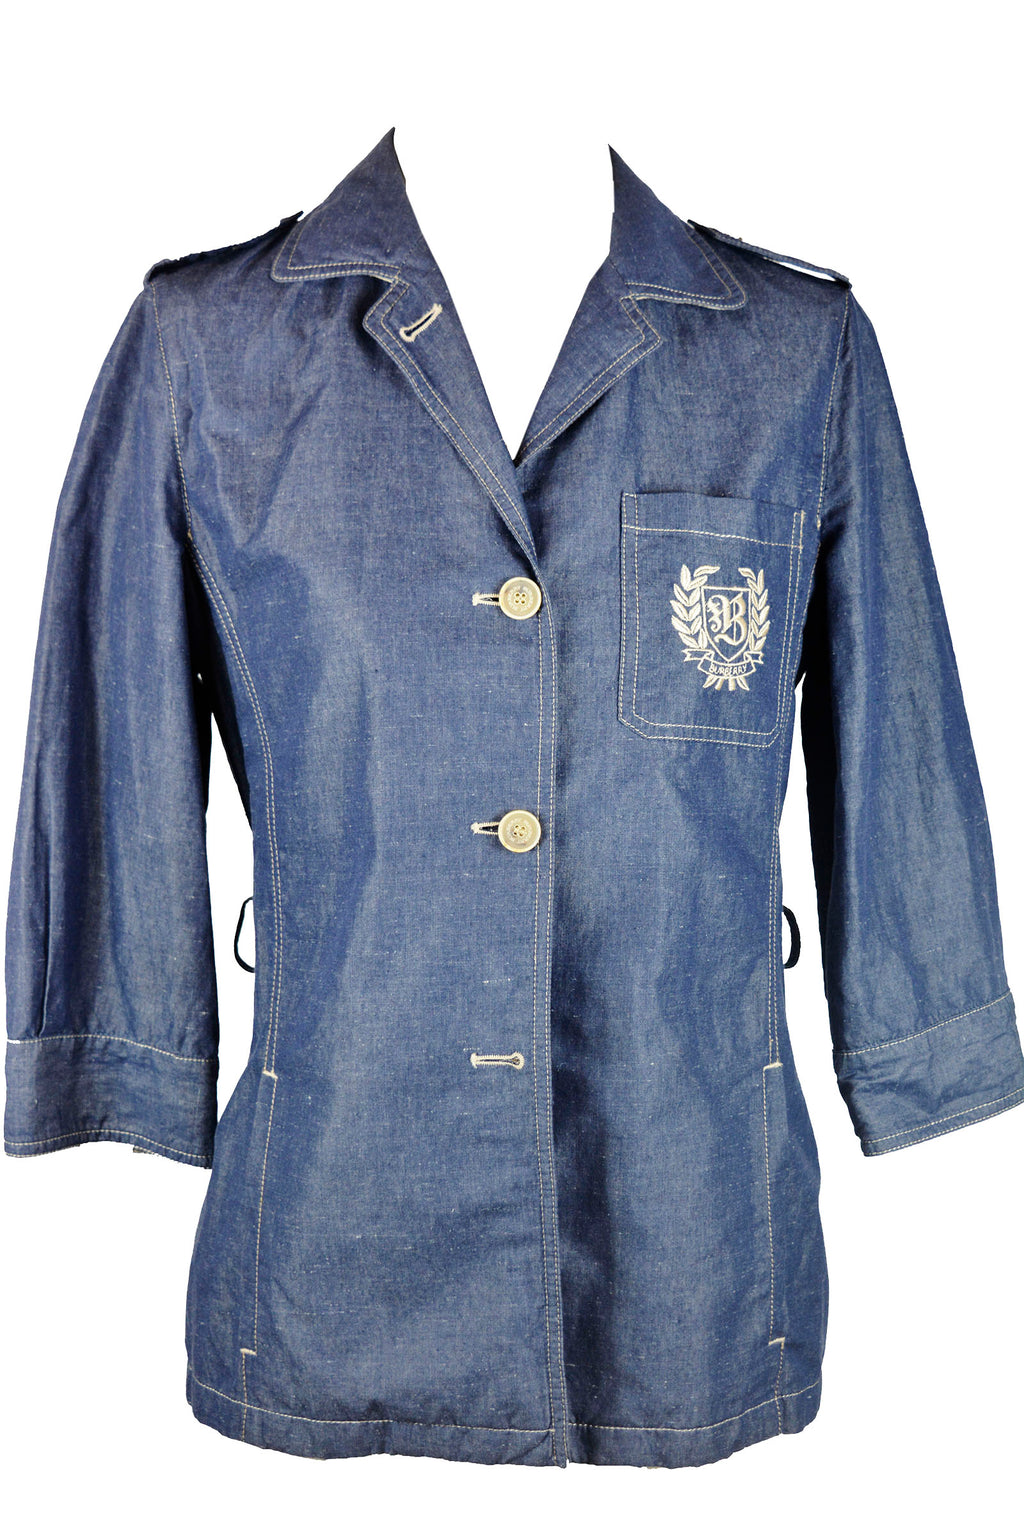 Burberry Denim Blazer with Beige Embroidered Pocket  and Buttons Size 38 (EU)